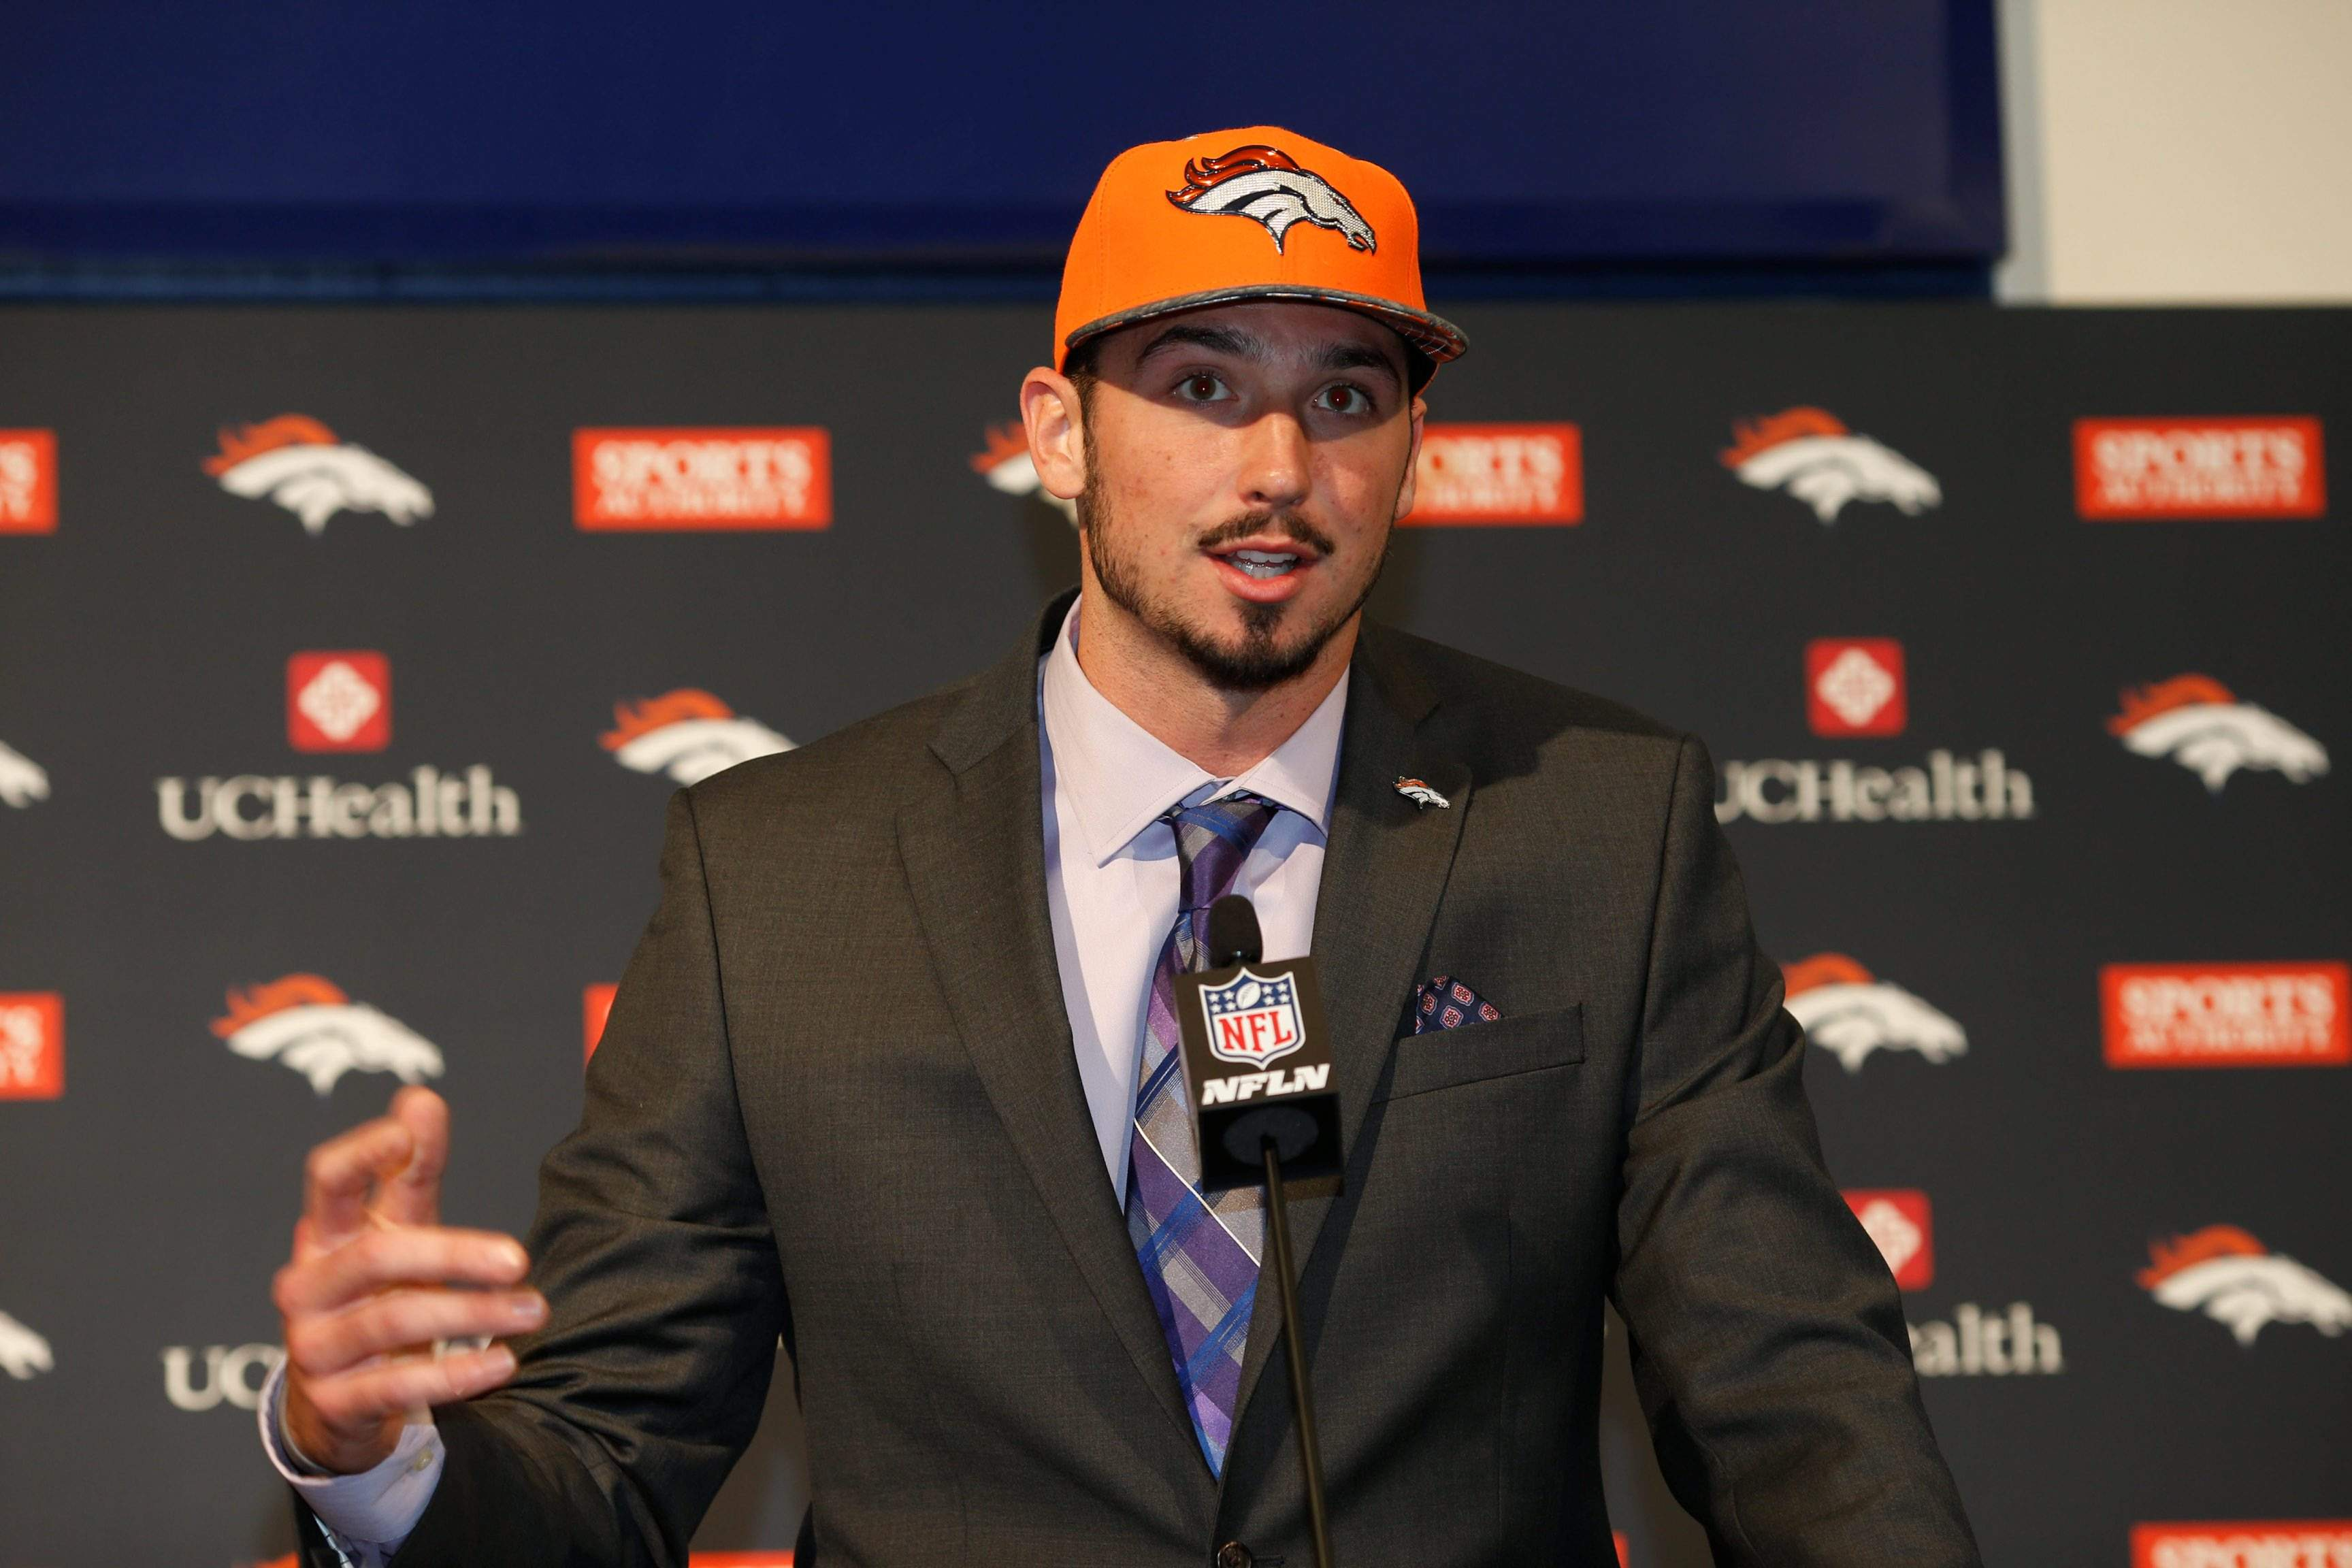 0bff42cddc8 Denver Broncos  first-round selection Paxton Lynch of Memphis will have a  chance to compete for the starting job right away. At 6-foot-7